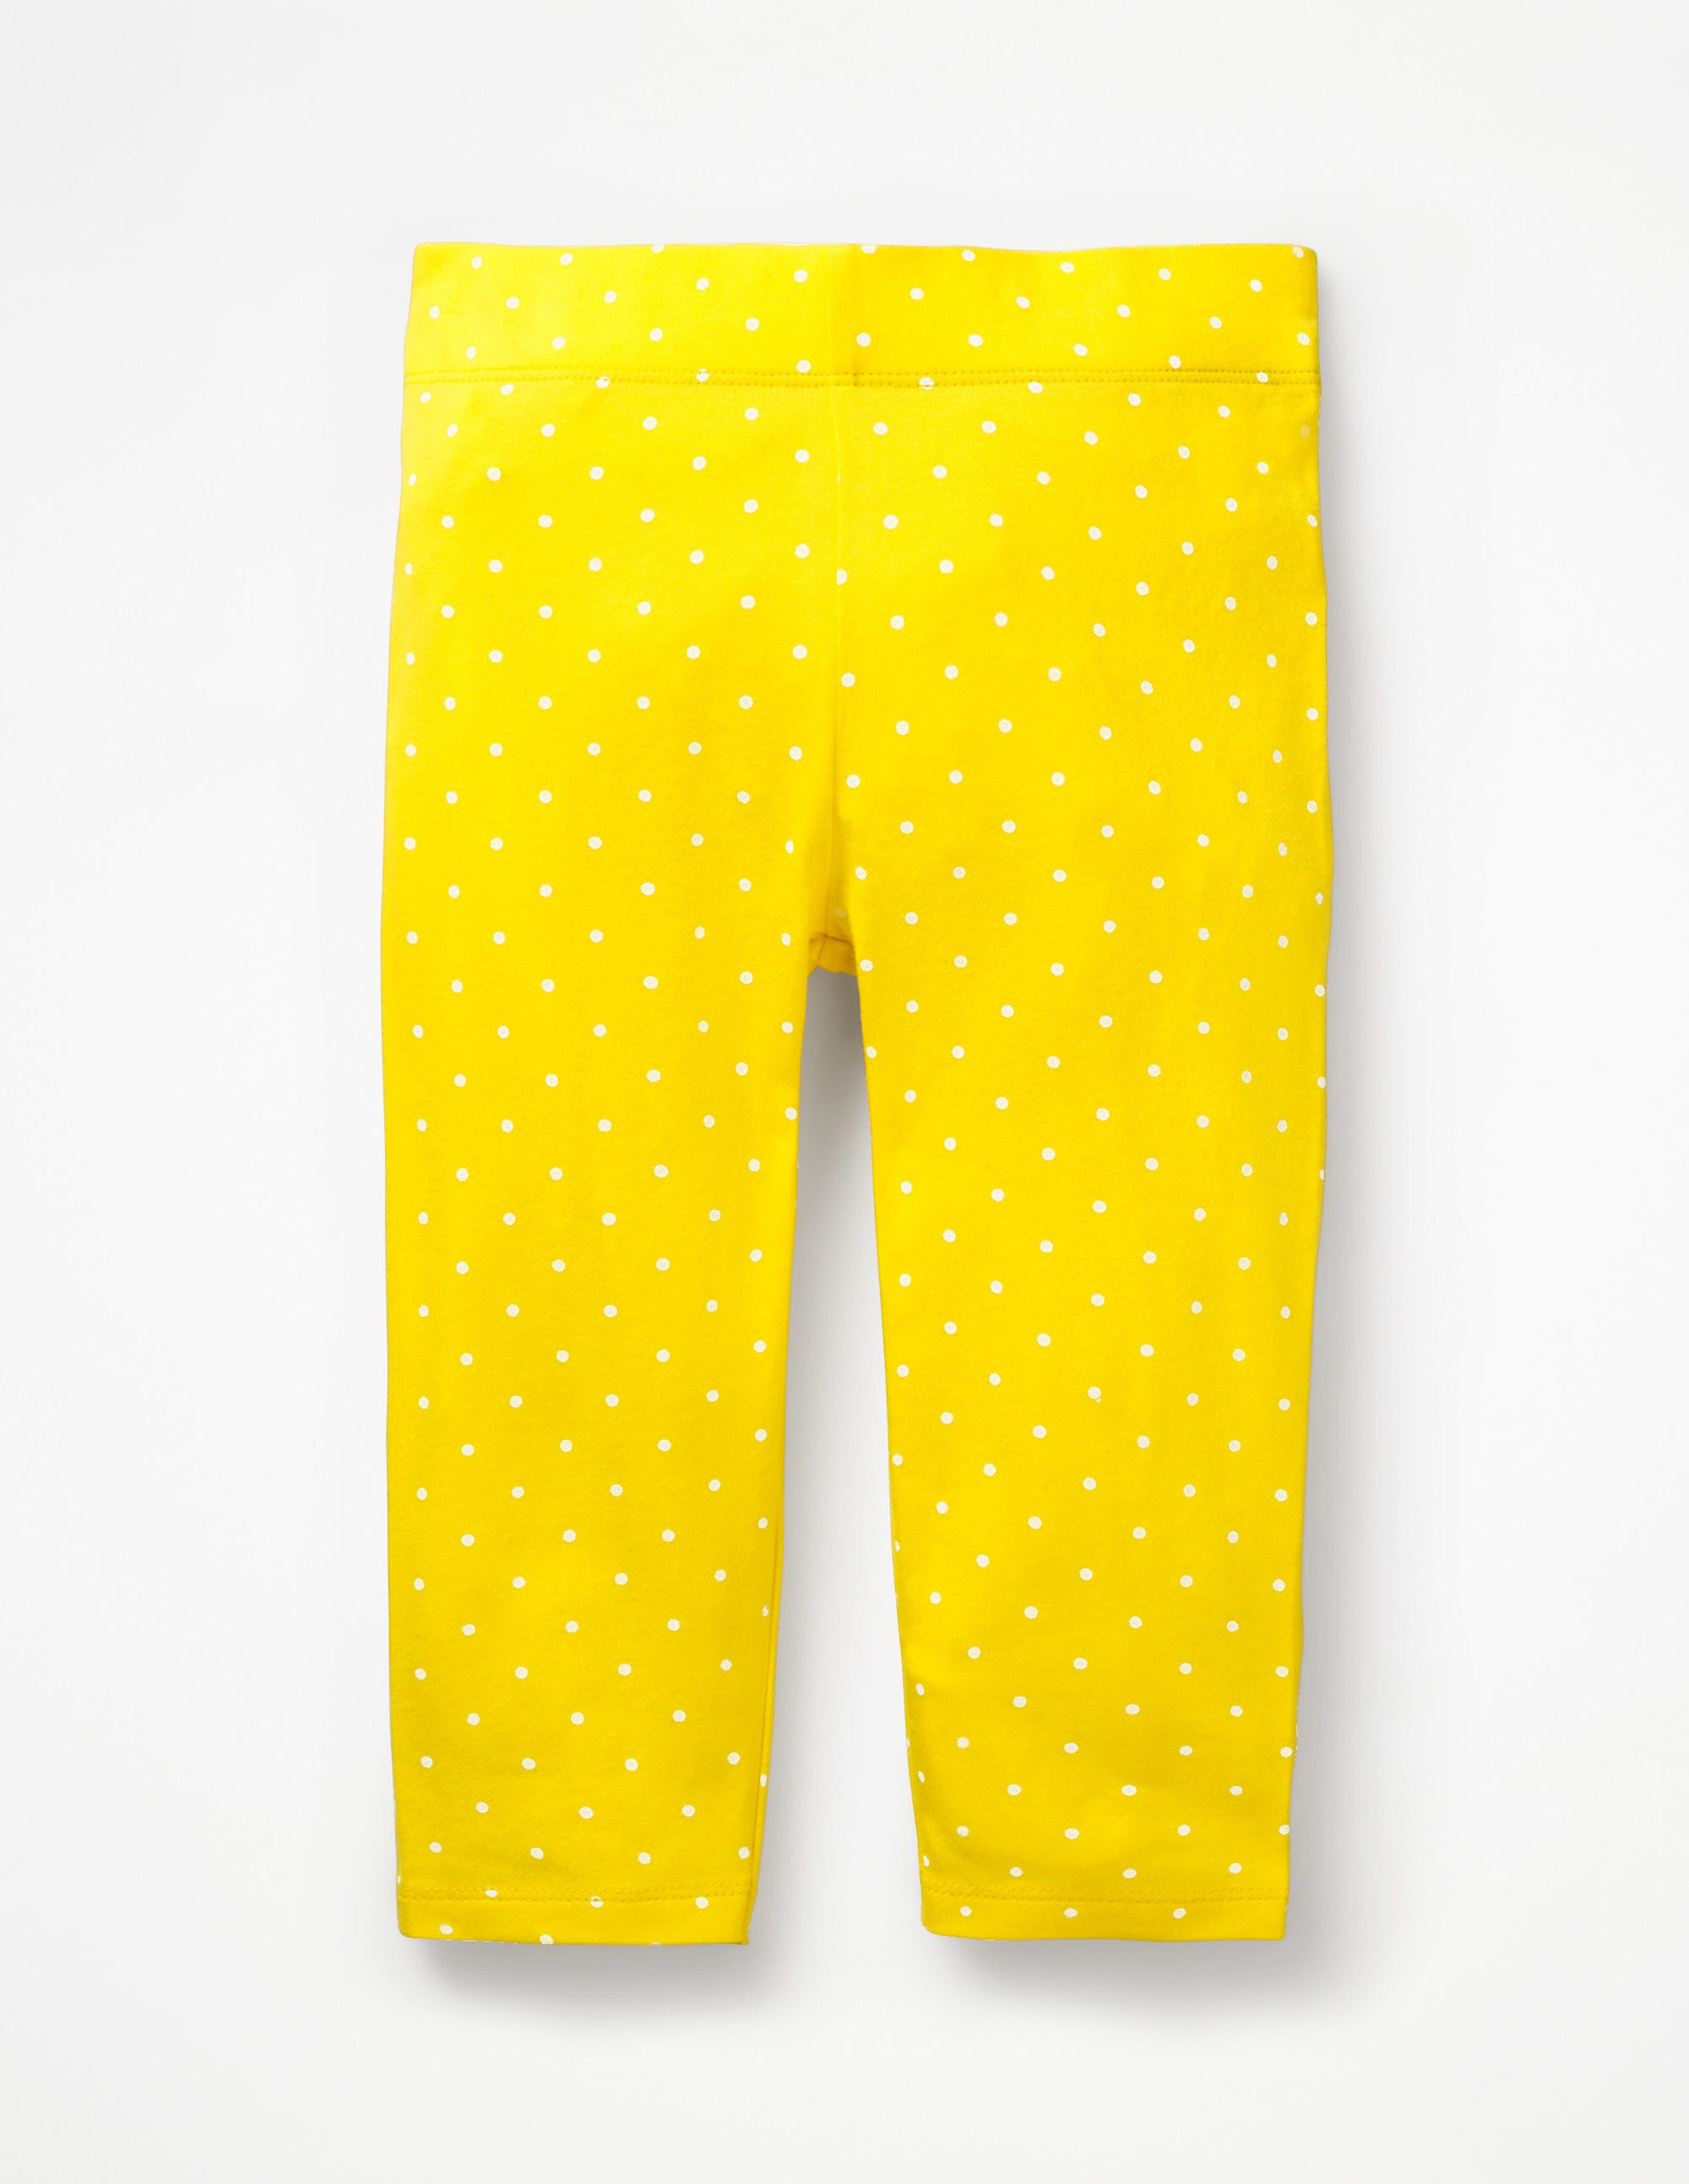 c9f2f91b0681e Stripe & Spot Cropped Leggings - Sunshine Yellow Pin Spot | Boden US